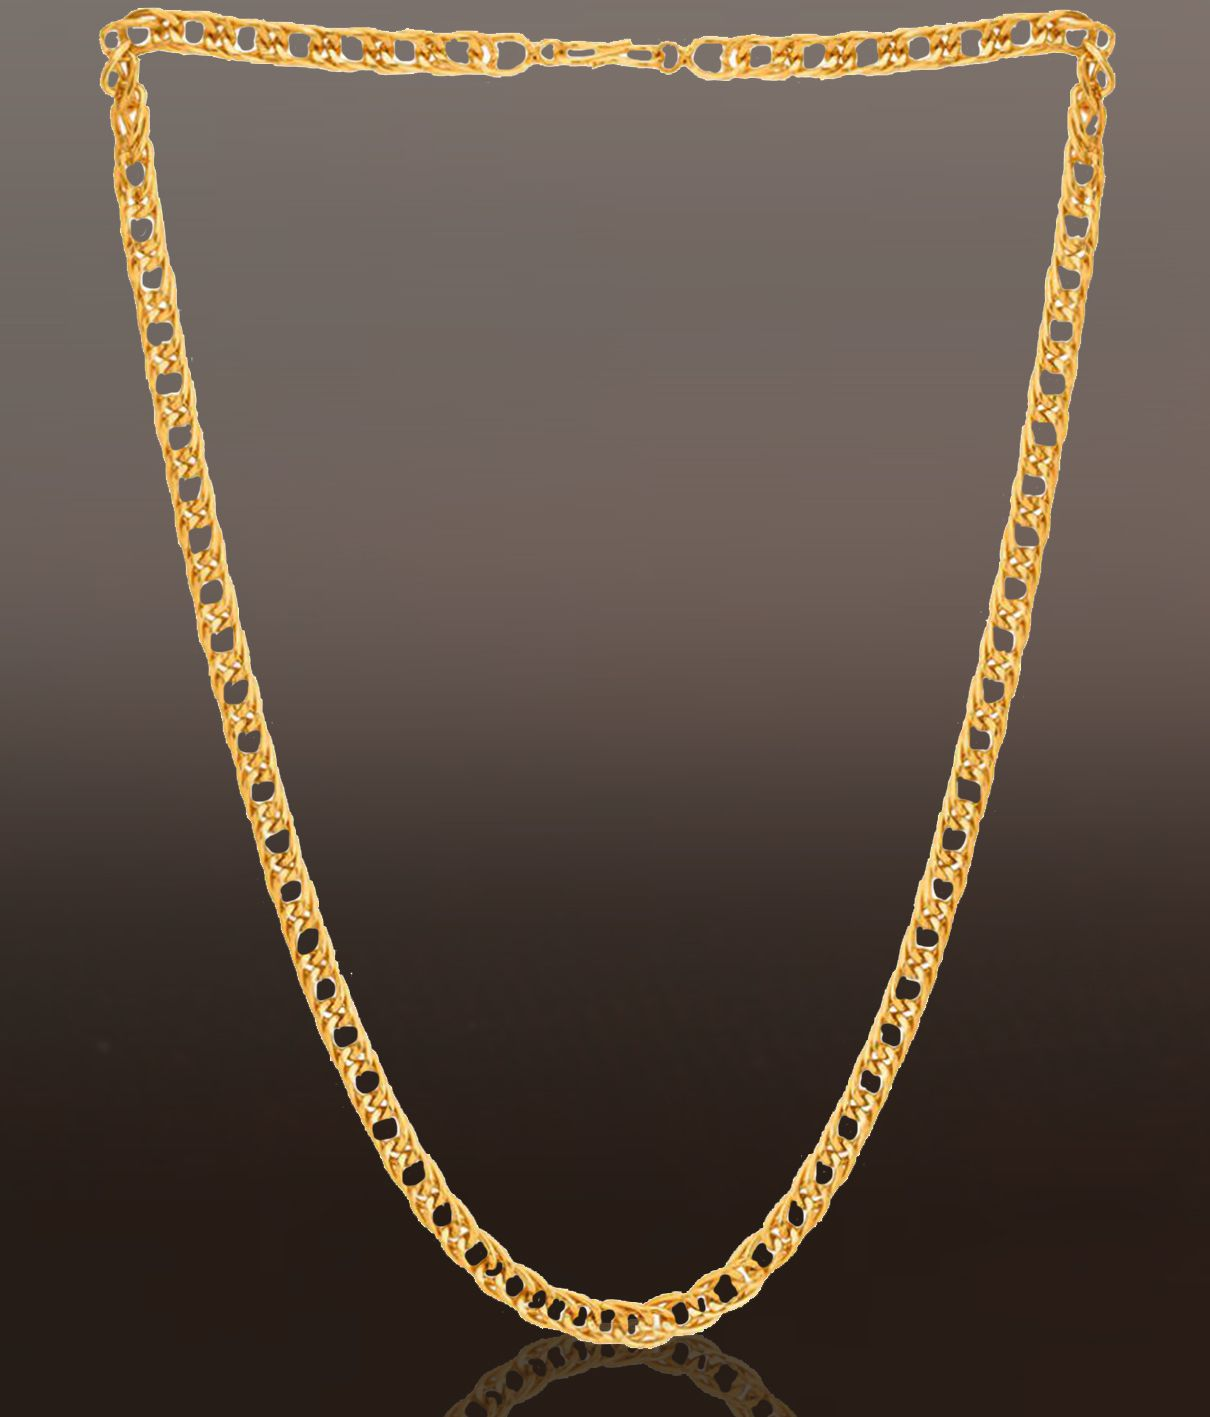 0fbeb5b7a141f Dare by Voylla Gold Plated Gourmet Link Chain from Golden Links  Buy Online  at Low Price in India - Snapdeal